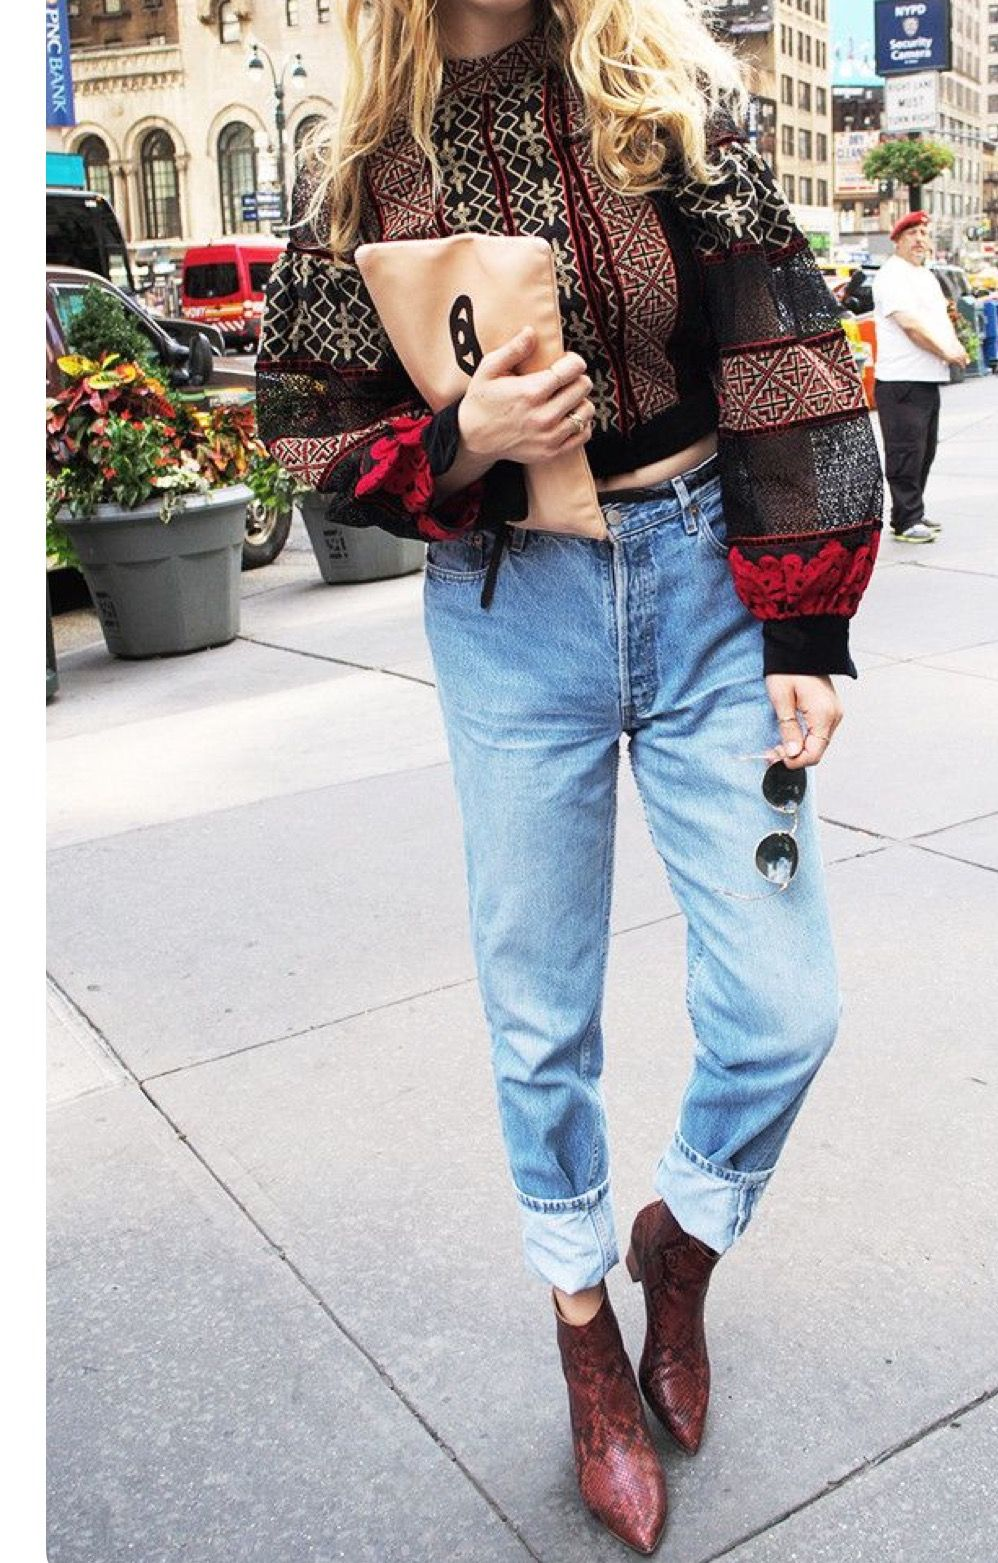 Find More at => http://feedproxy.google.com/~r/amazingoutfits/~3/1rhKrGwuvQQ/AmazingOutfits.page